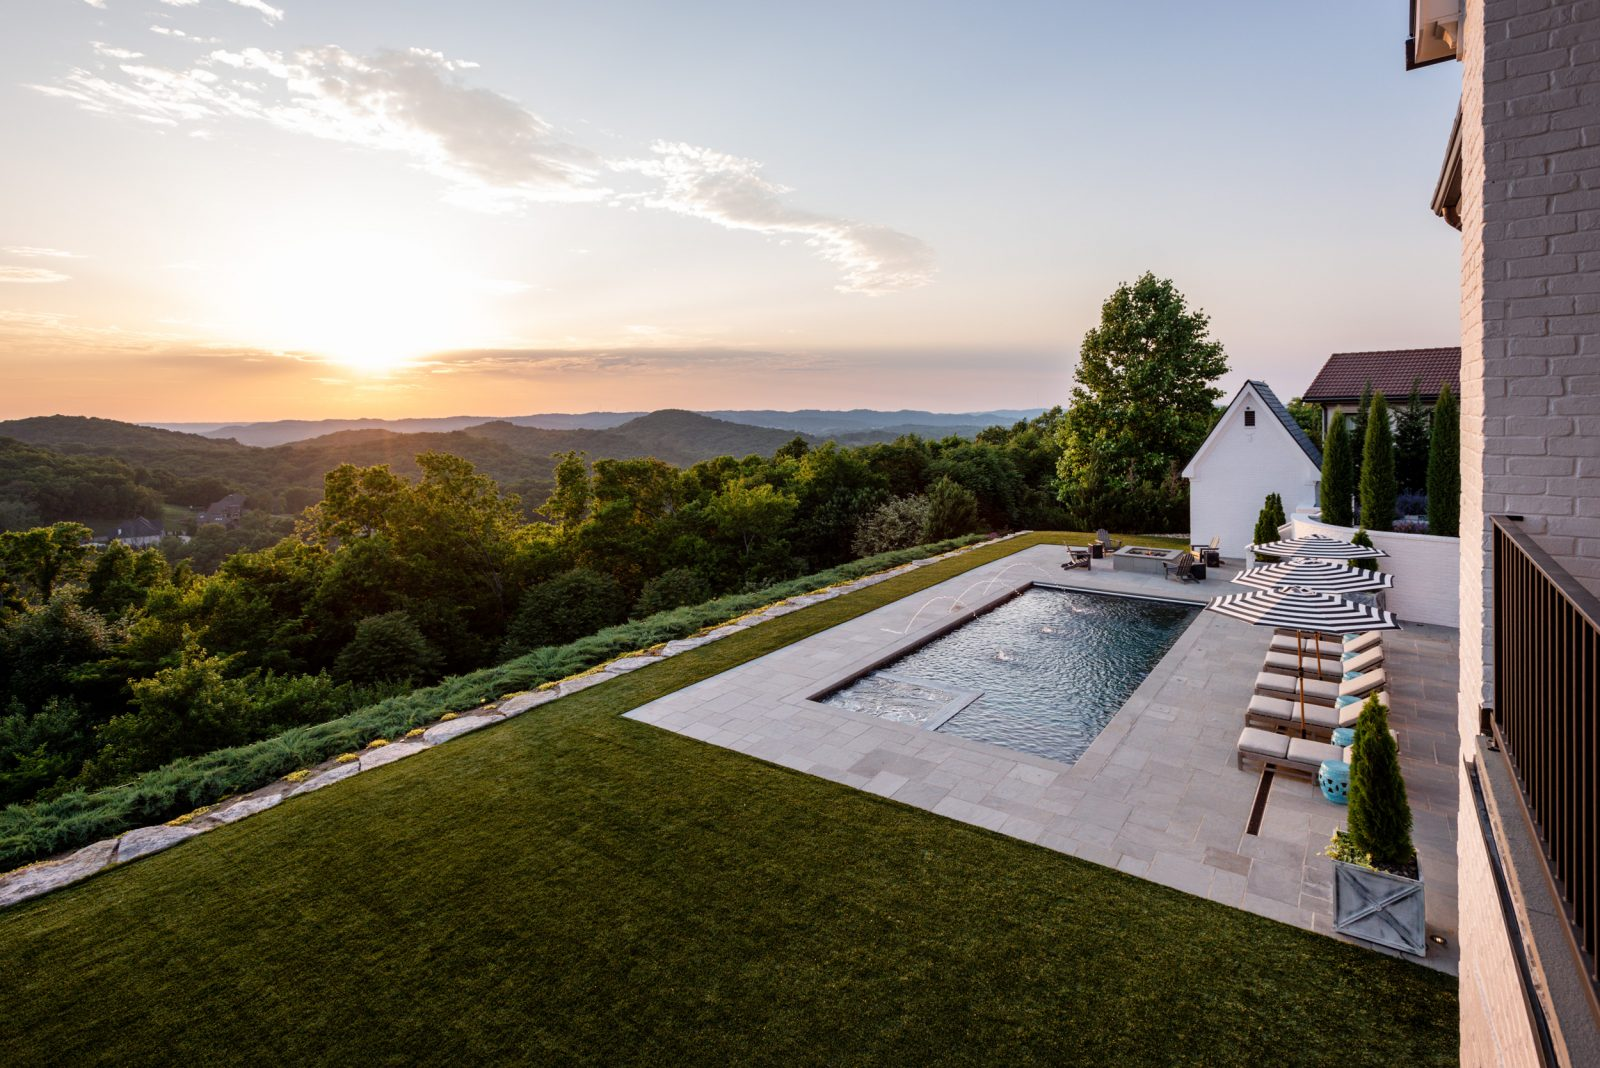 Picture of a pool on a hilltop overlooking the surrounding Franklin, TN area at sunset